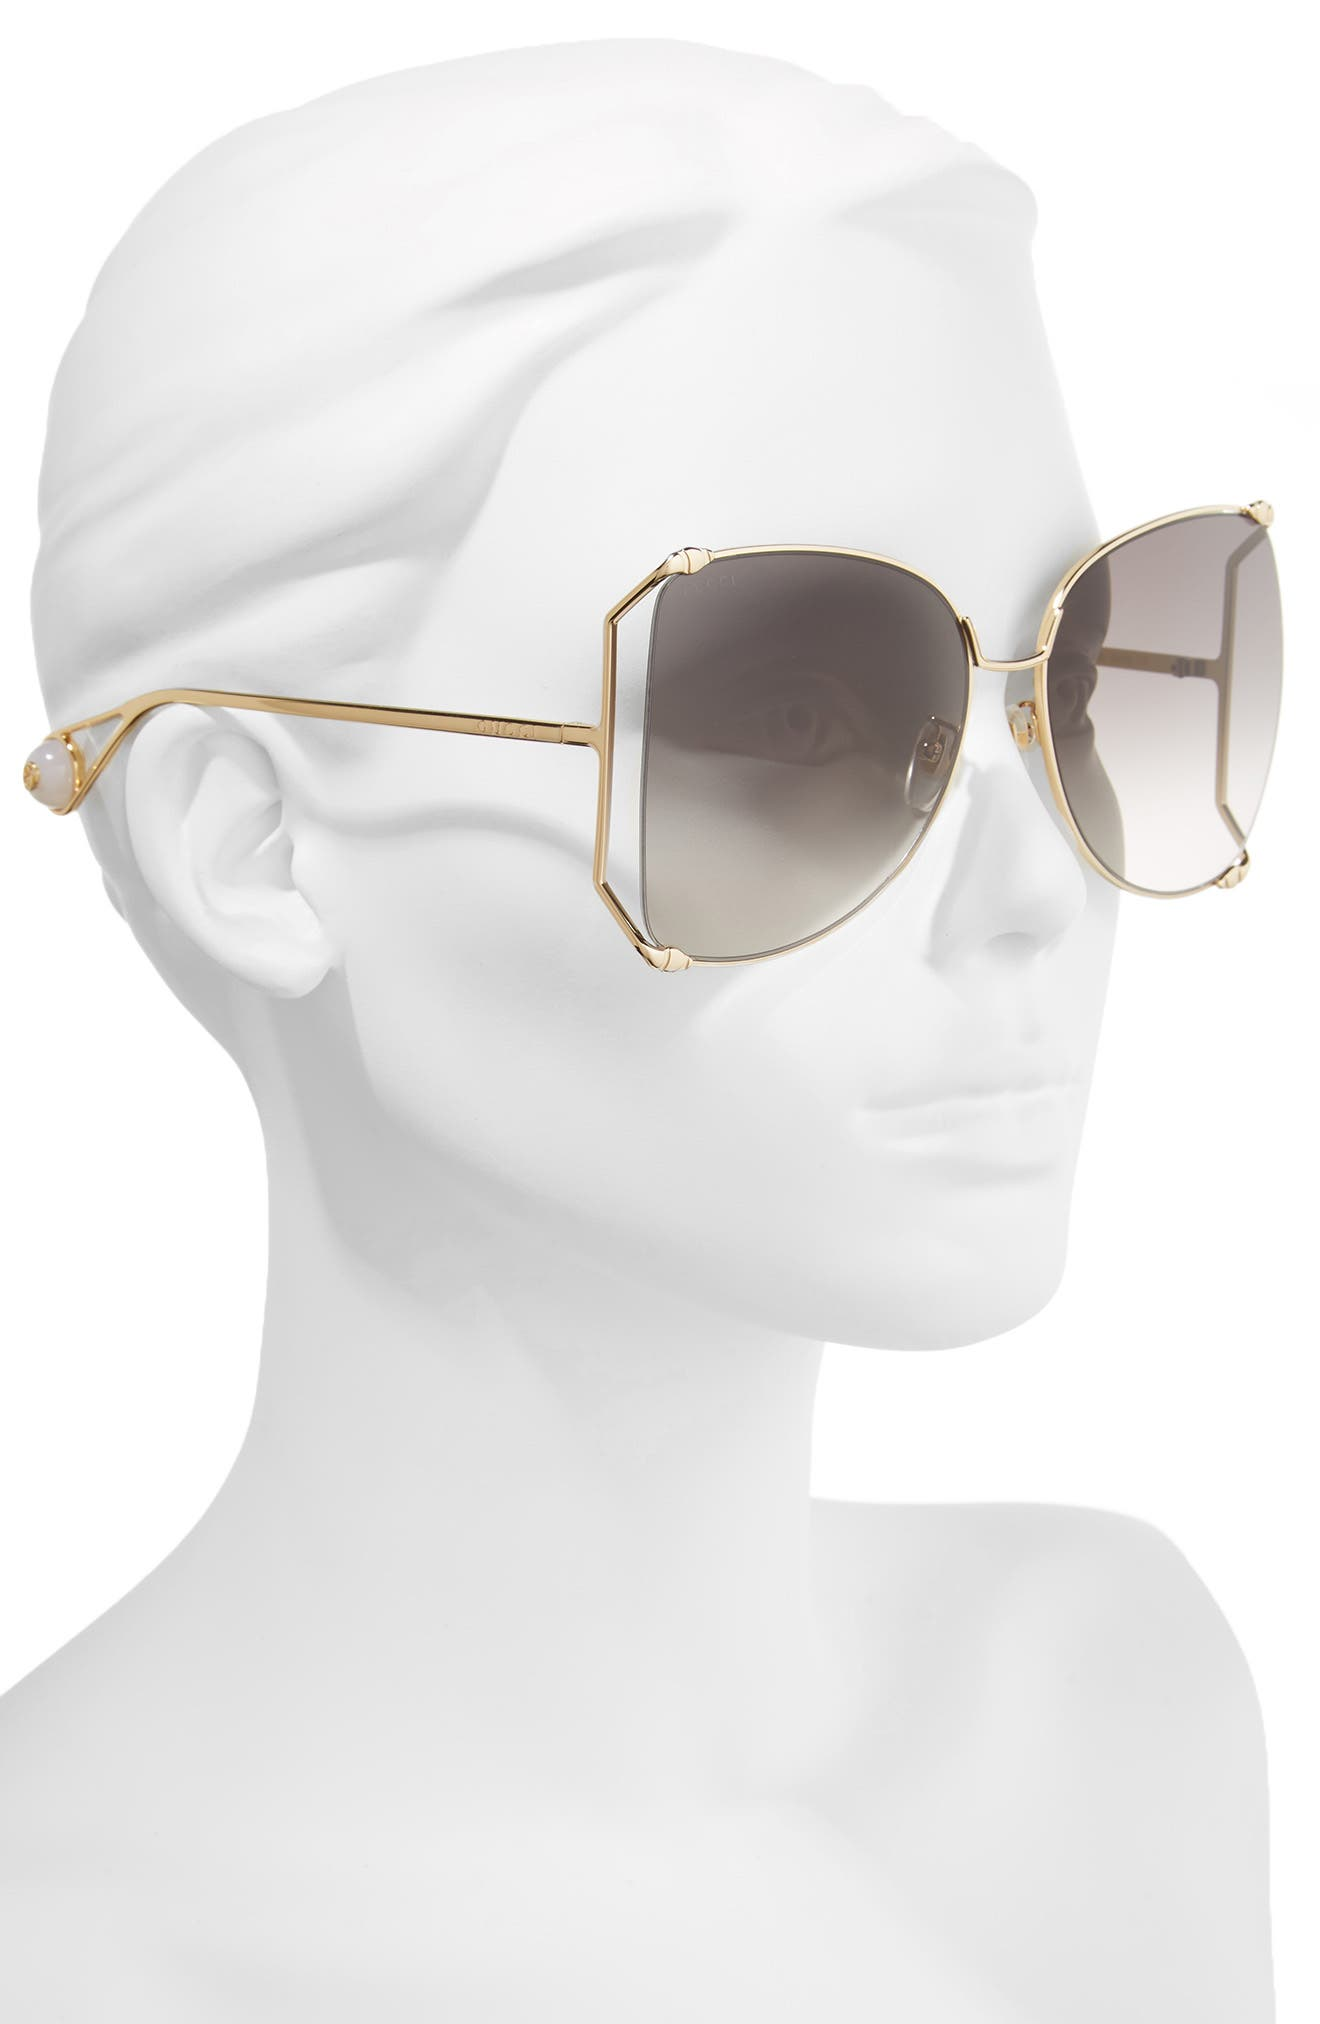 63mm Gradient Oversize Butterfly Sunglasses,                             Alternate thumbnail 2, color,                             GOLD/ GRADIENT GREY